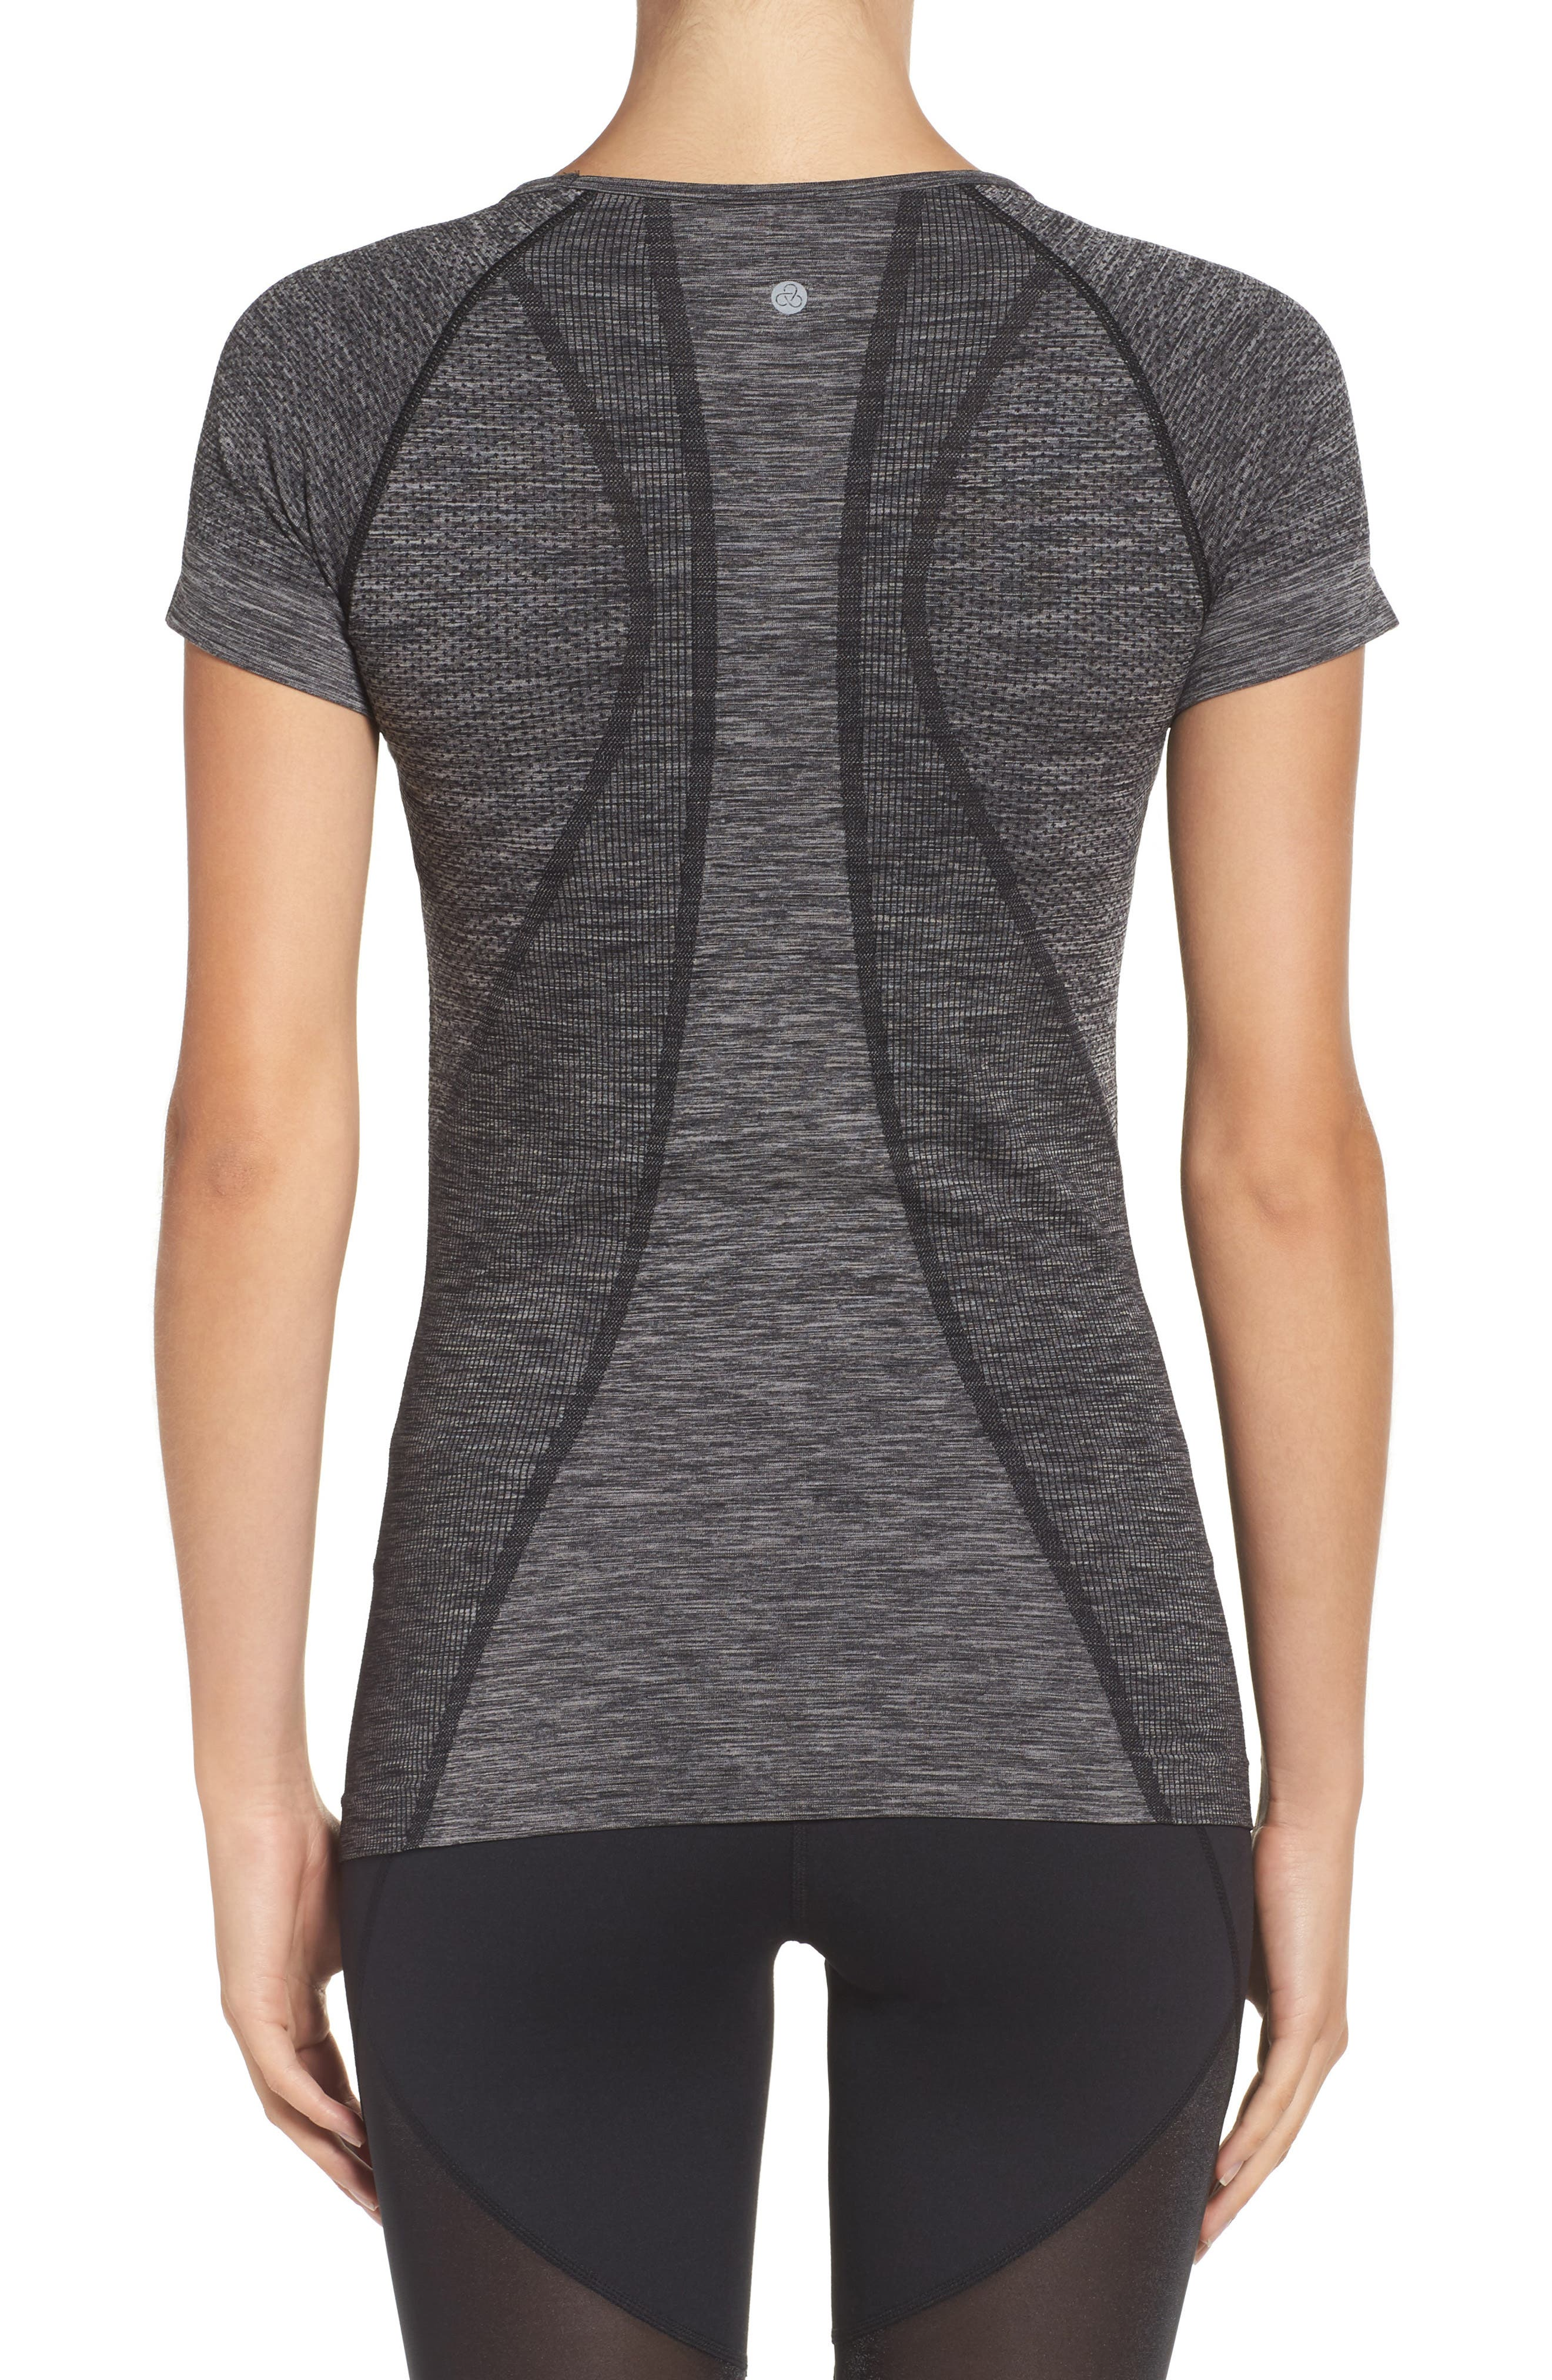 Alternate Image 2  - Zella Stand Out Seamless Training Tee